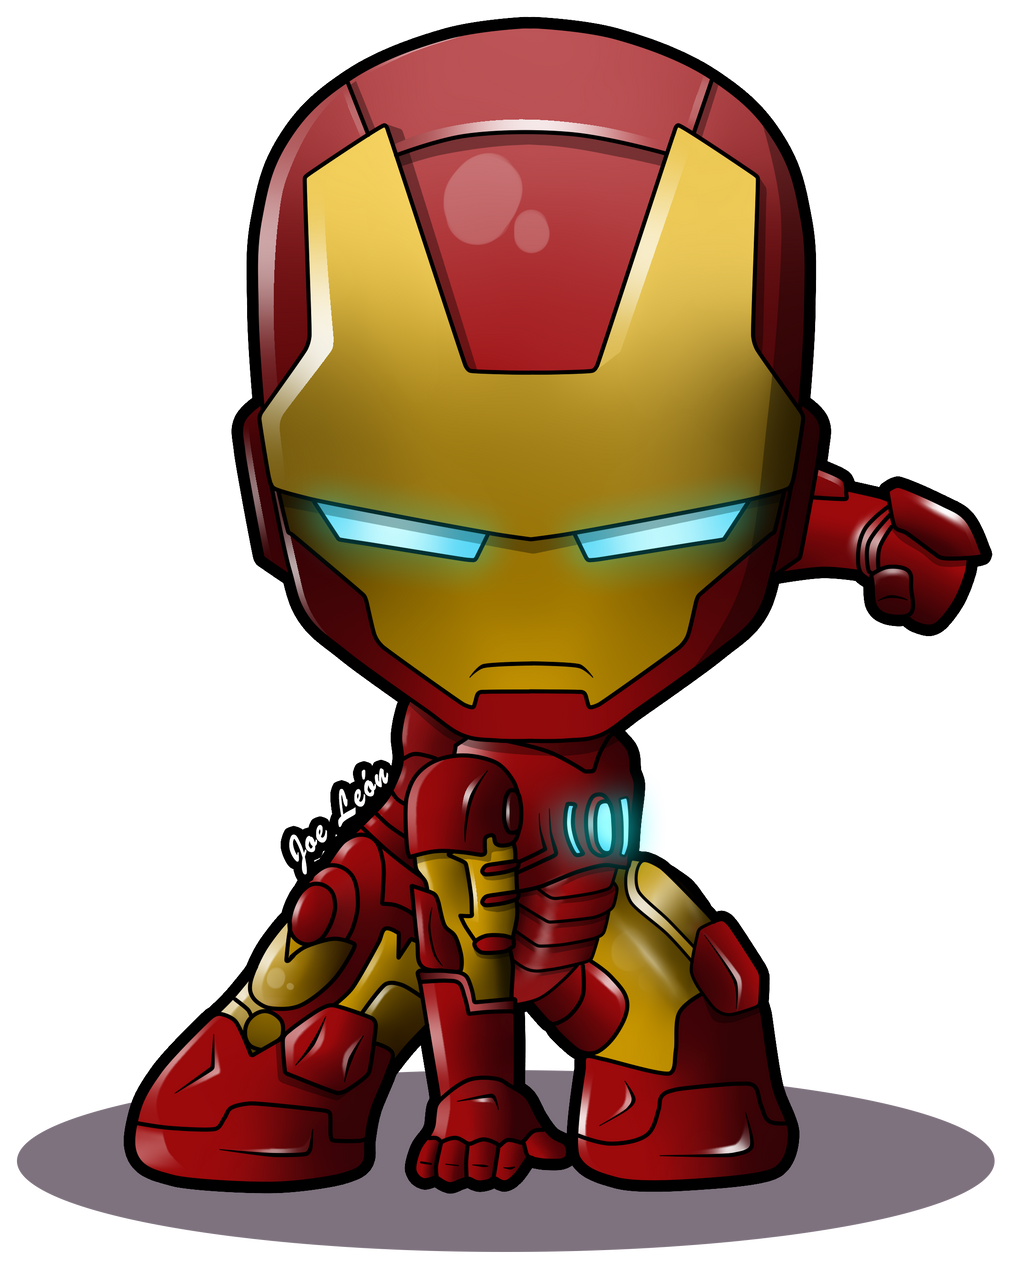 Iron-Man Chibi by JoeLeon on DeviantArt